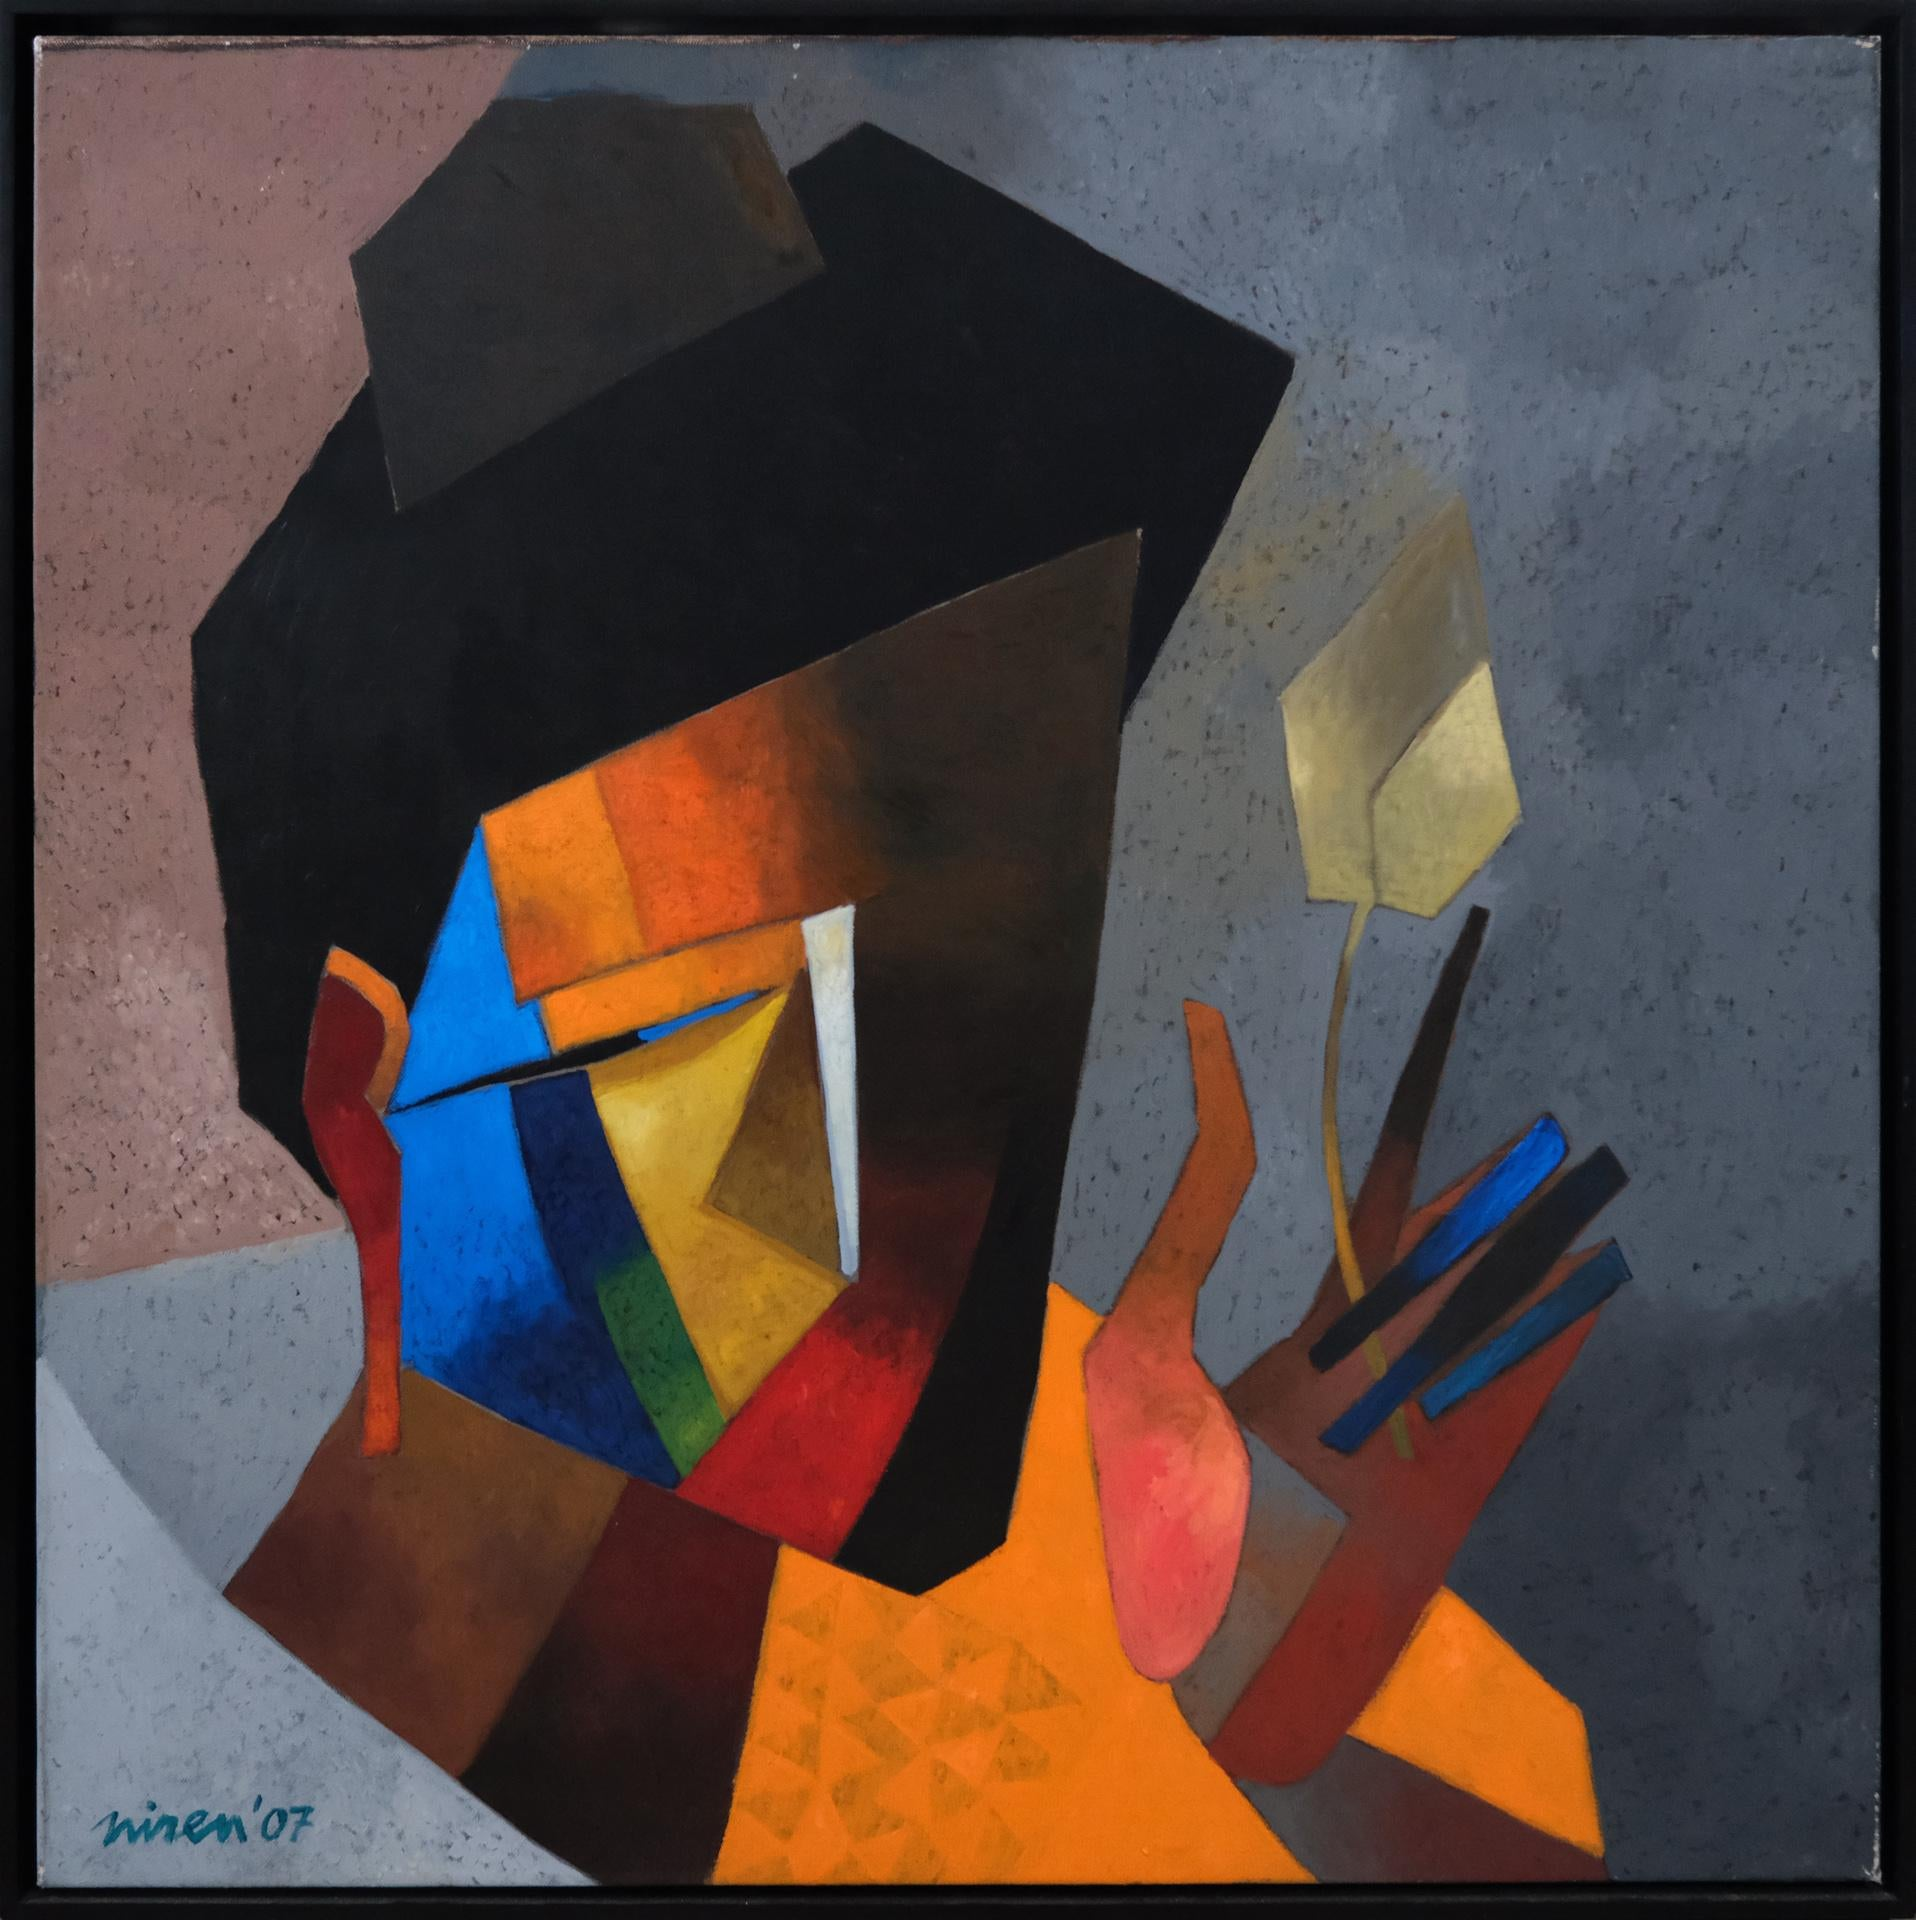 Eternal Quest, Indian Artist (Delhi),Aesthetic Expressions, Geometric Objects